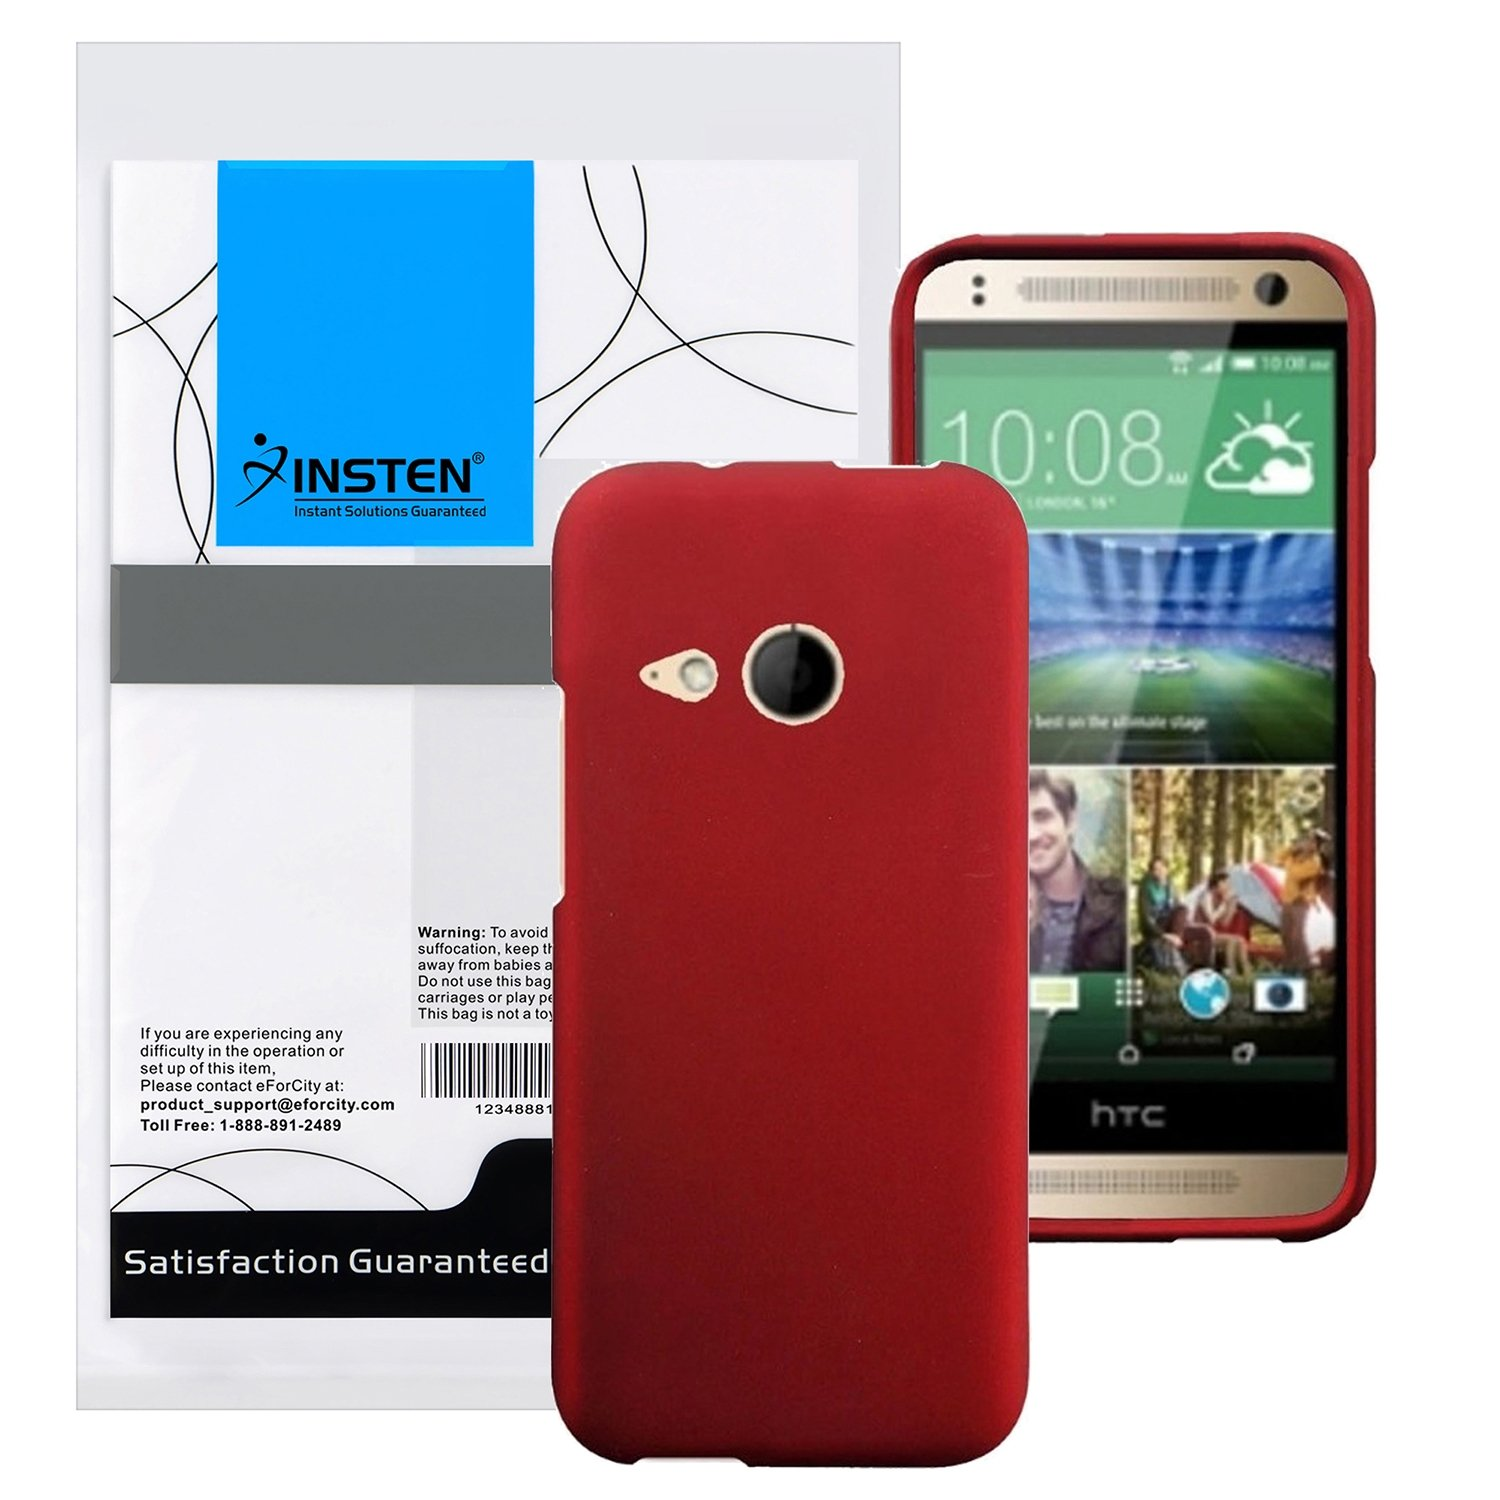 HR Wireless Rubberized Cover for HTC One Remix M8 Mini - Retail Packaging - Red by HRWireless (Image #1)